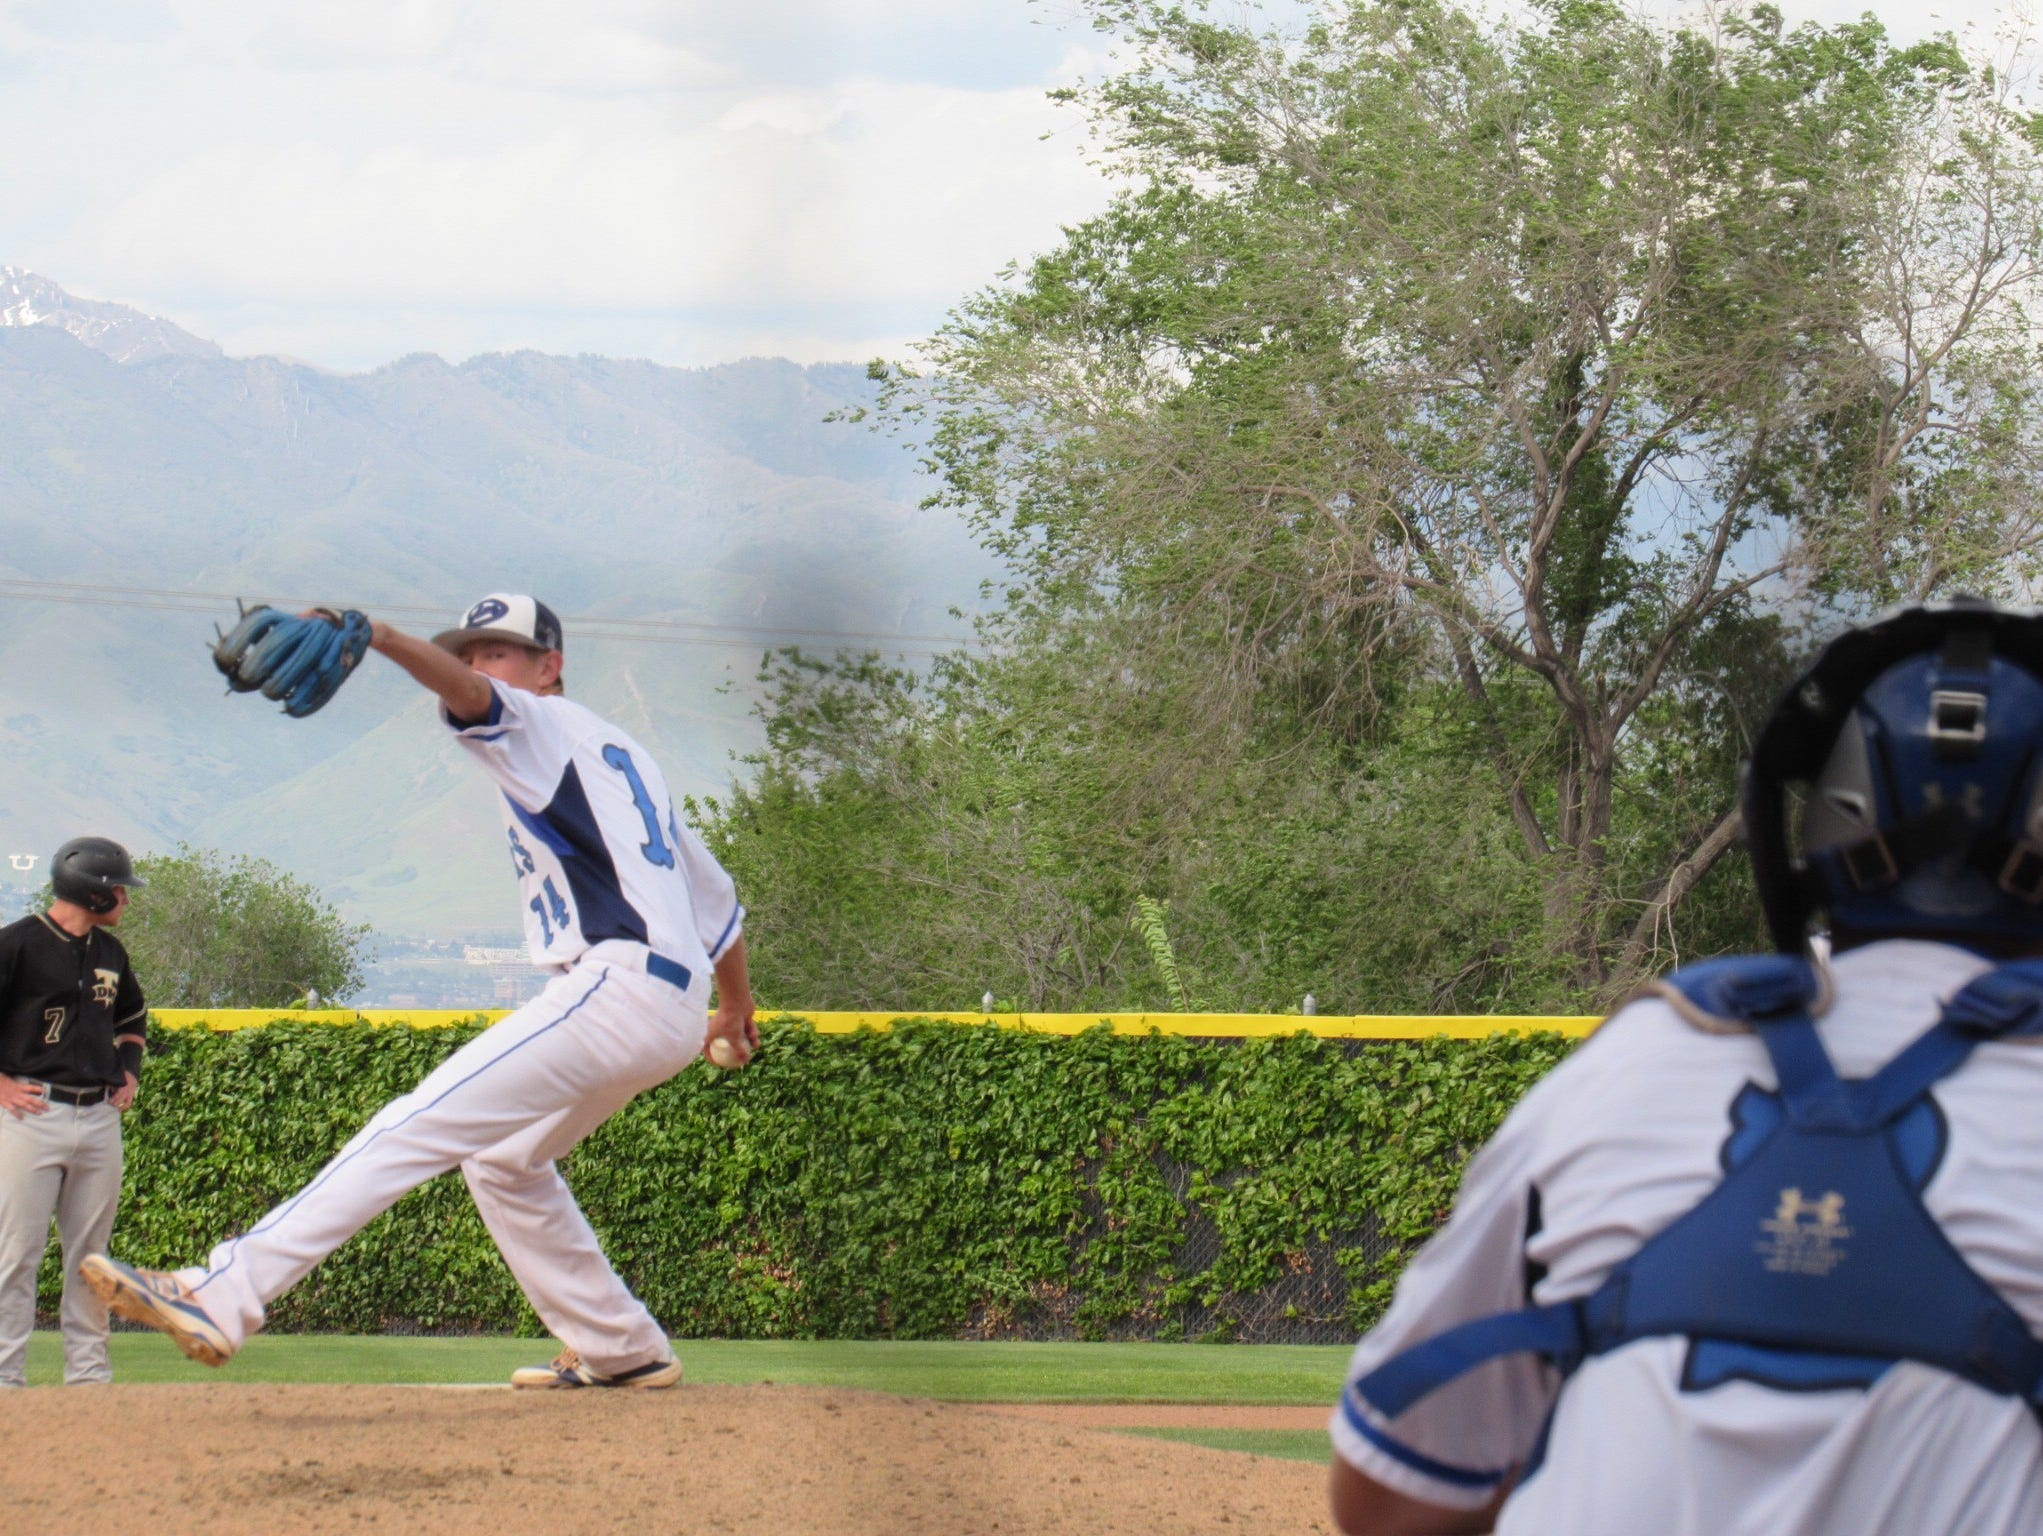 Dixie beat Desert Hills 8-5 in the 3A state playoffs